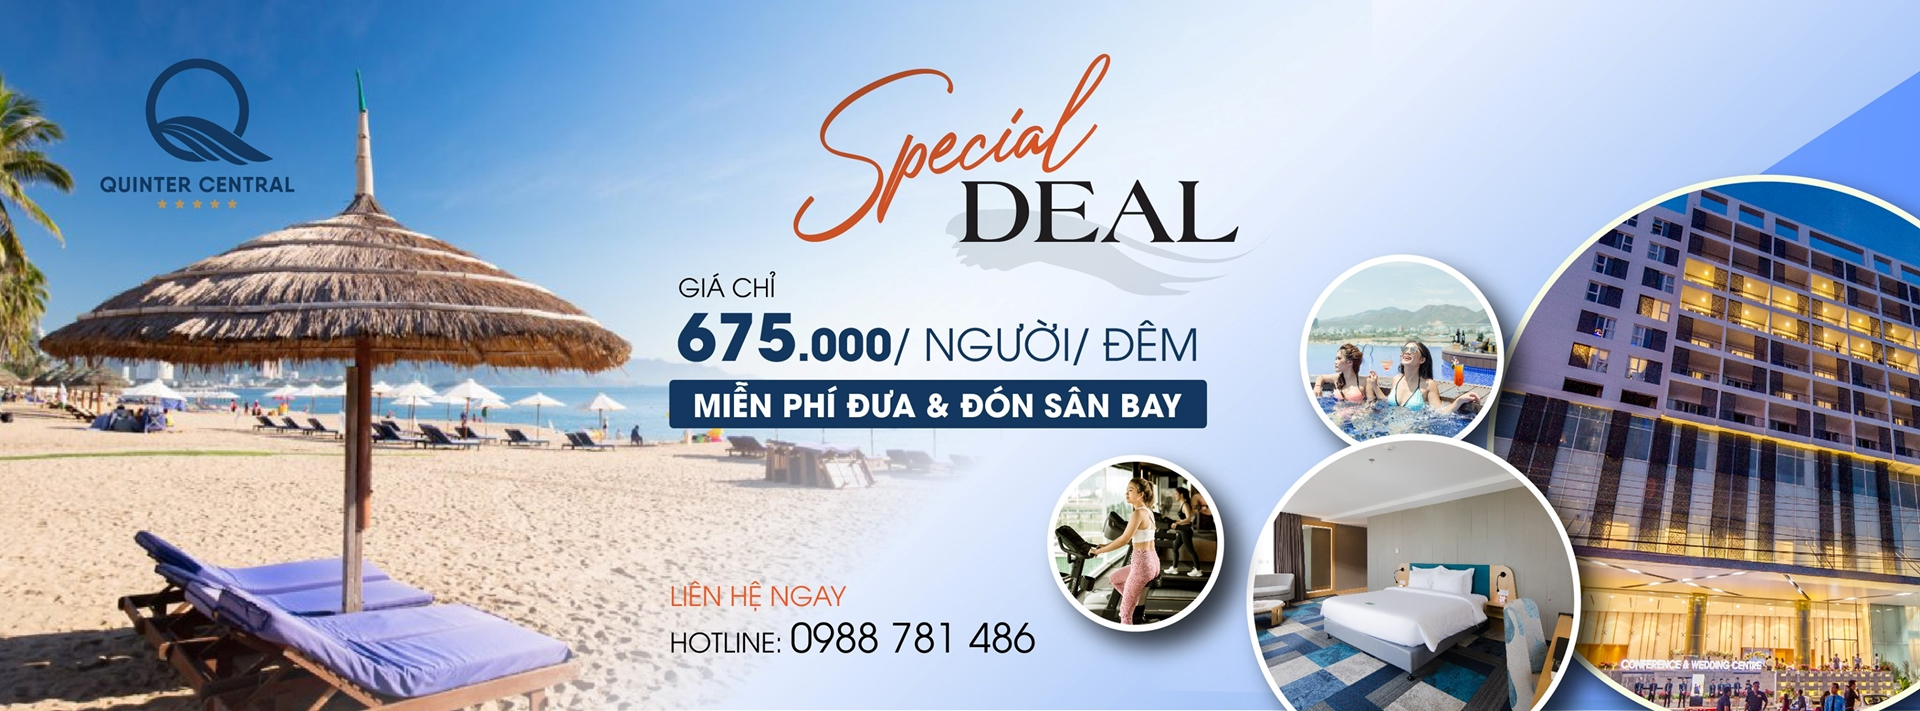 SPECIAL DEAL